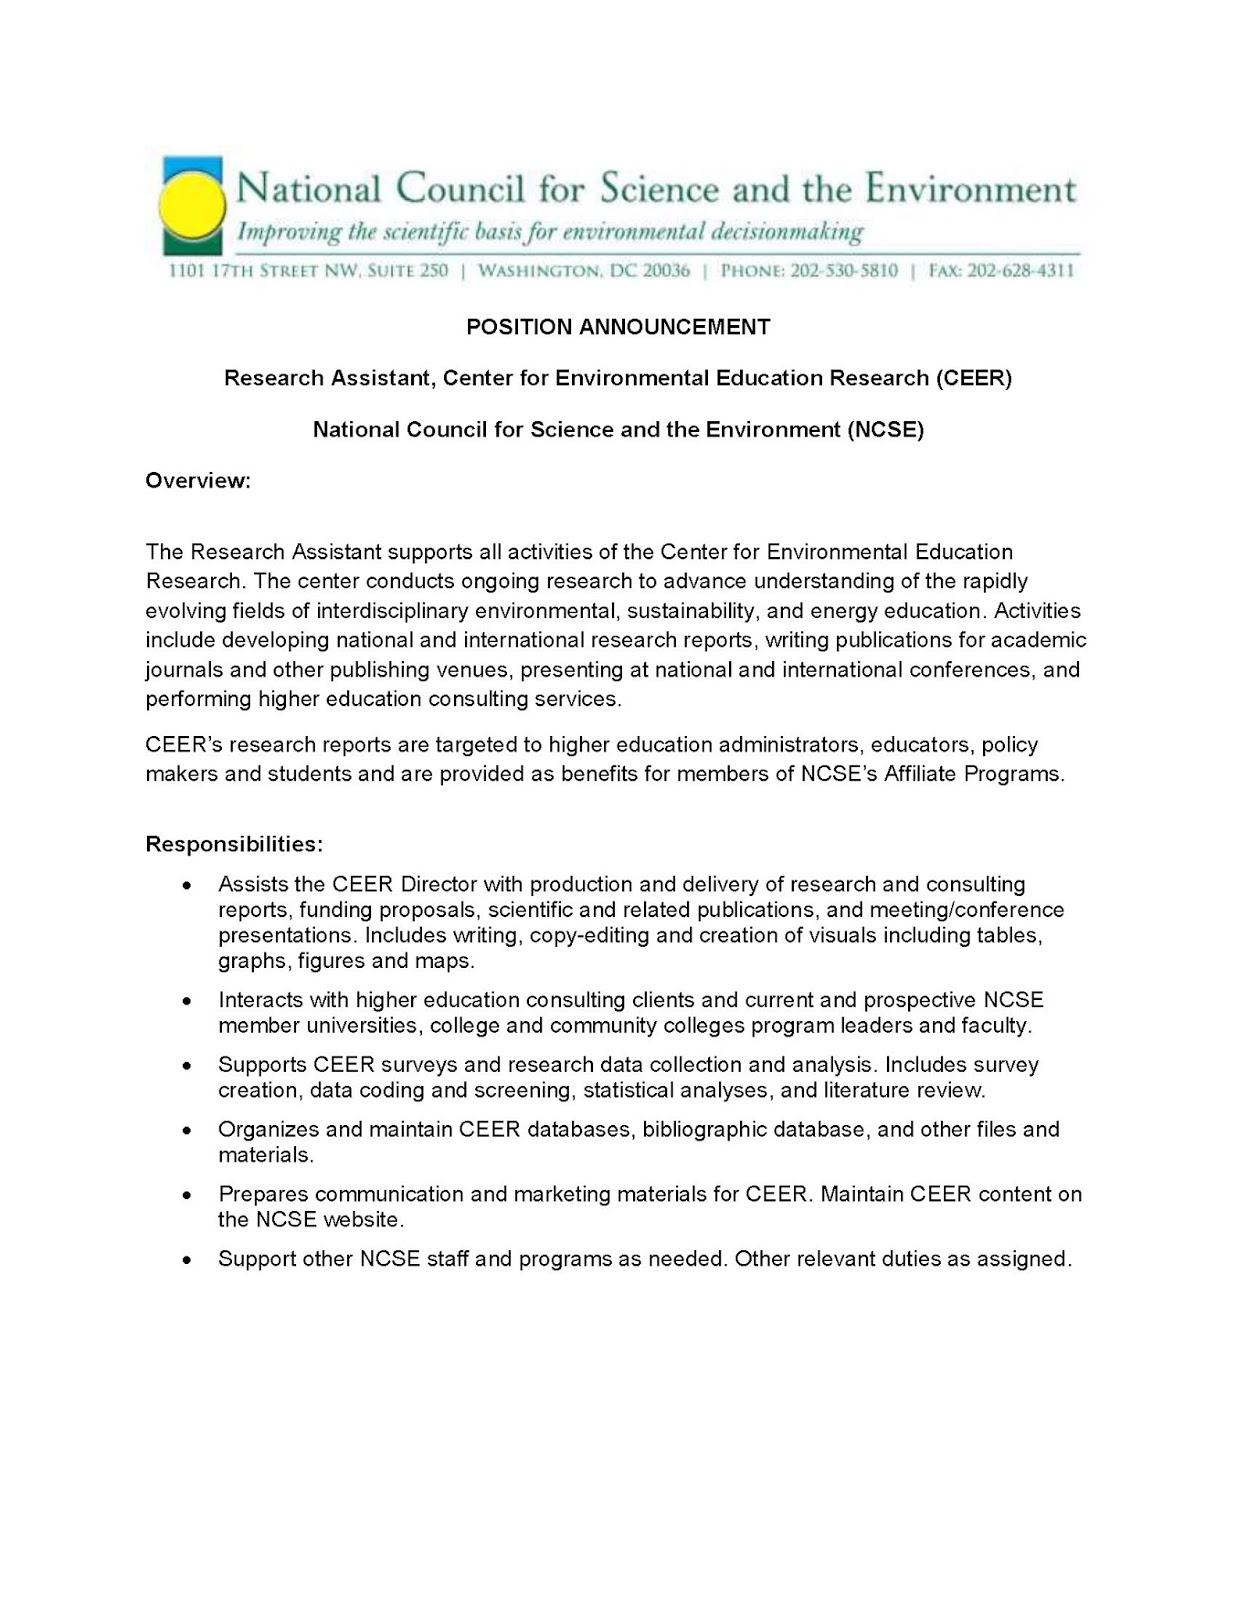 Environmental Studies Student News: Research Assistant